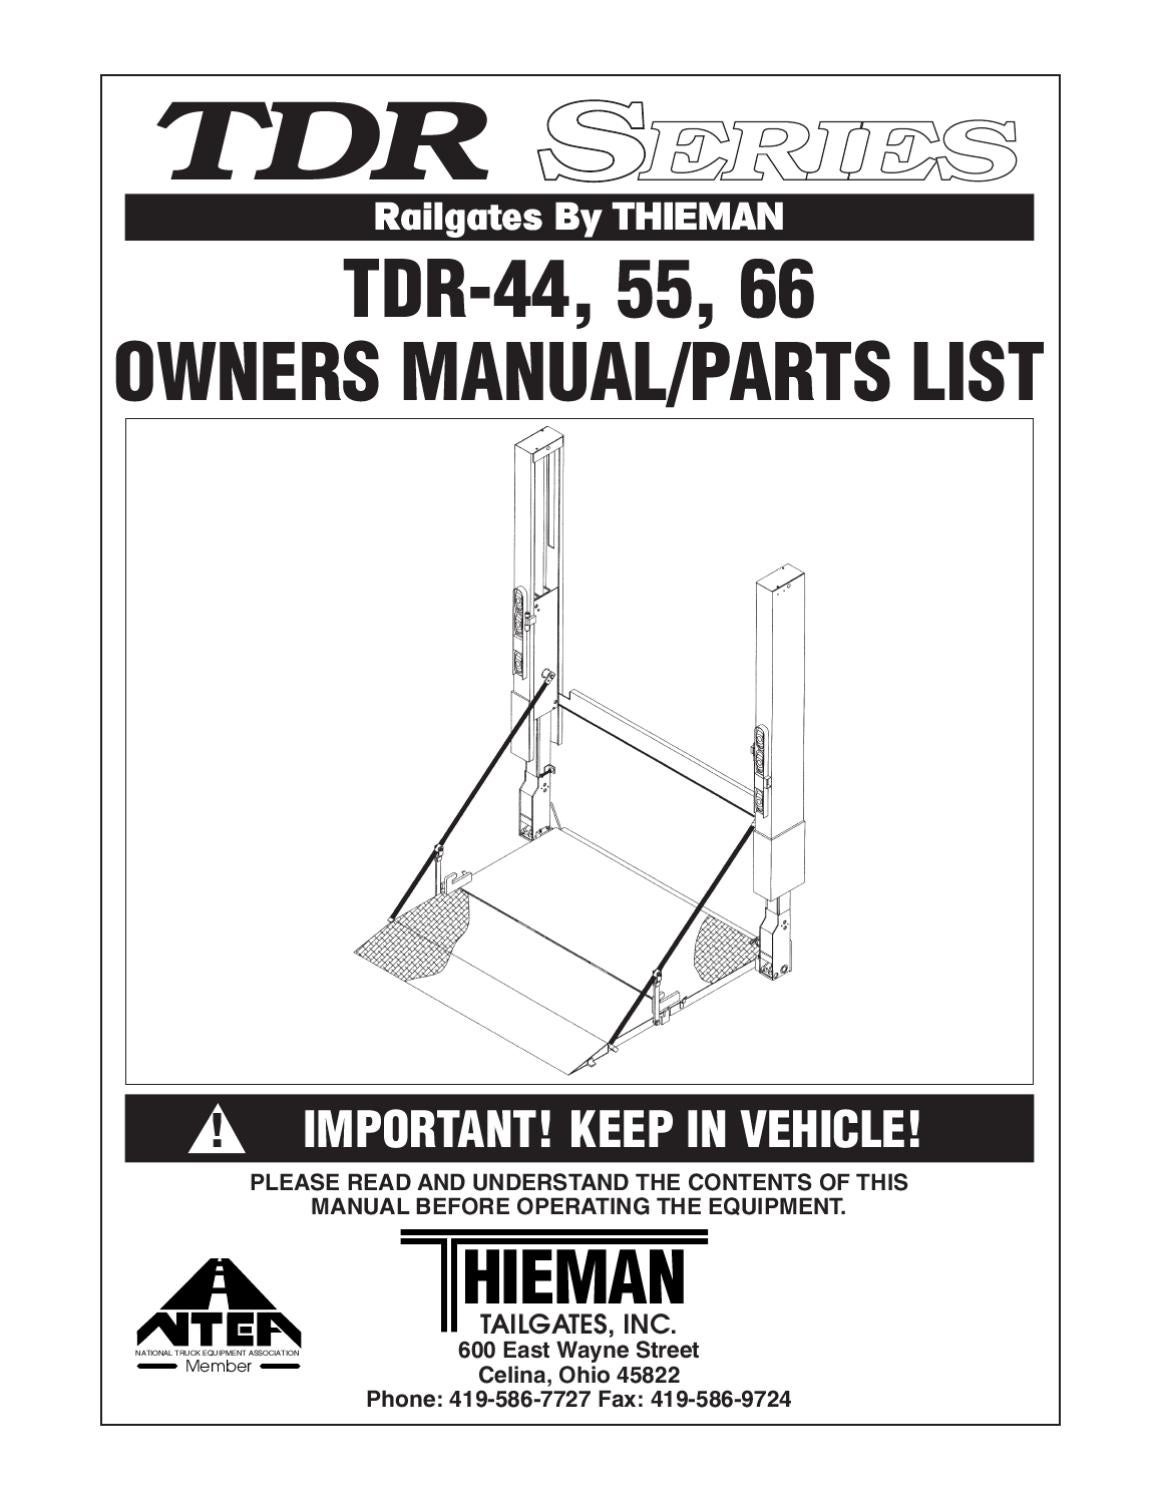 Thieman Liftgate Wiring Diagram List Of Schematic Circuit Maxon Bmraw 44 Tdr Series By The Parts Co Issuu Rh Com